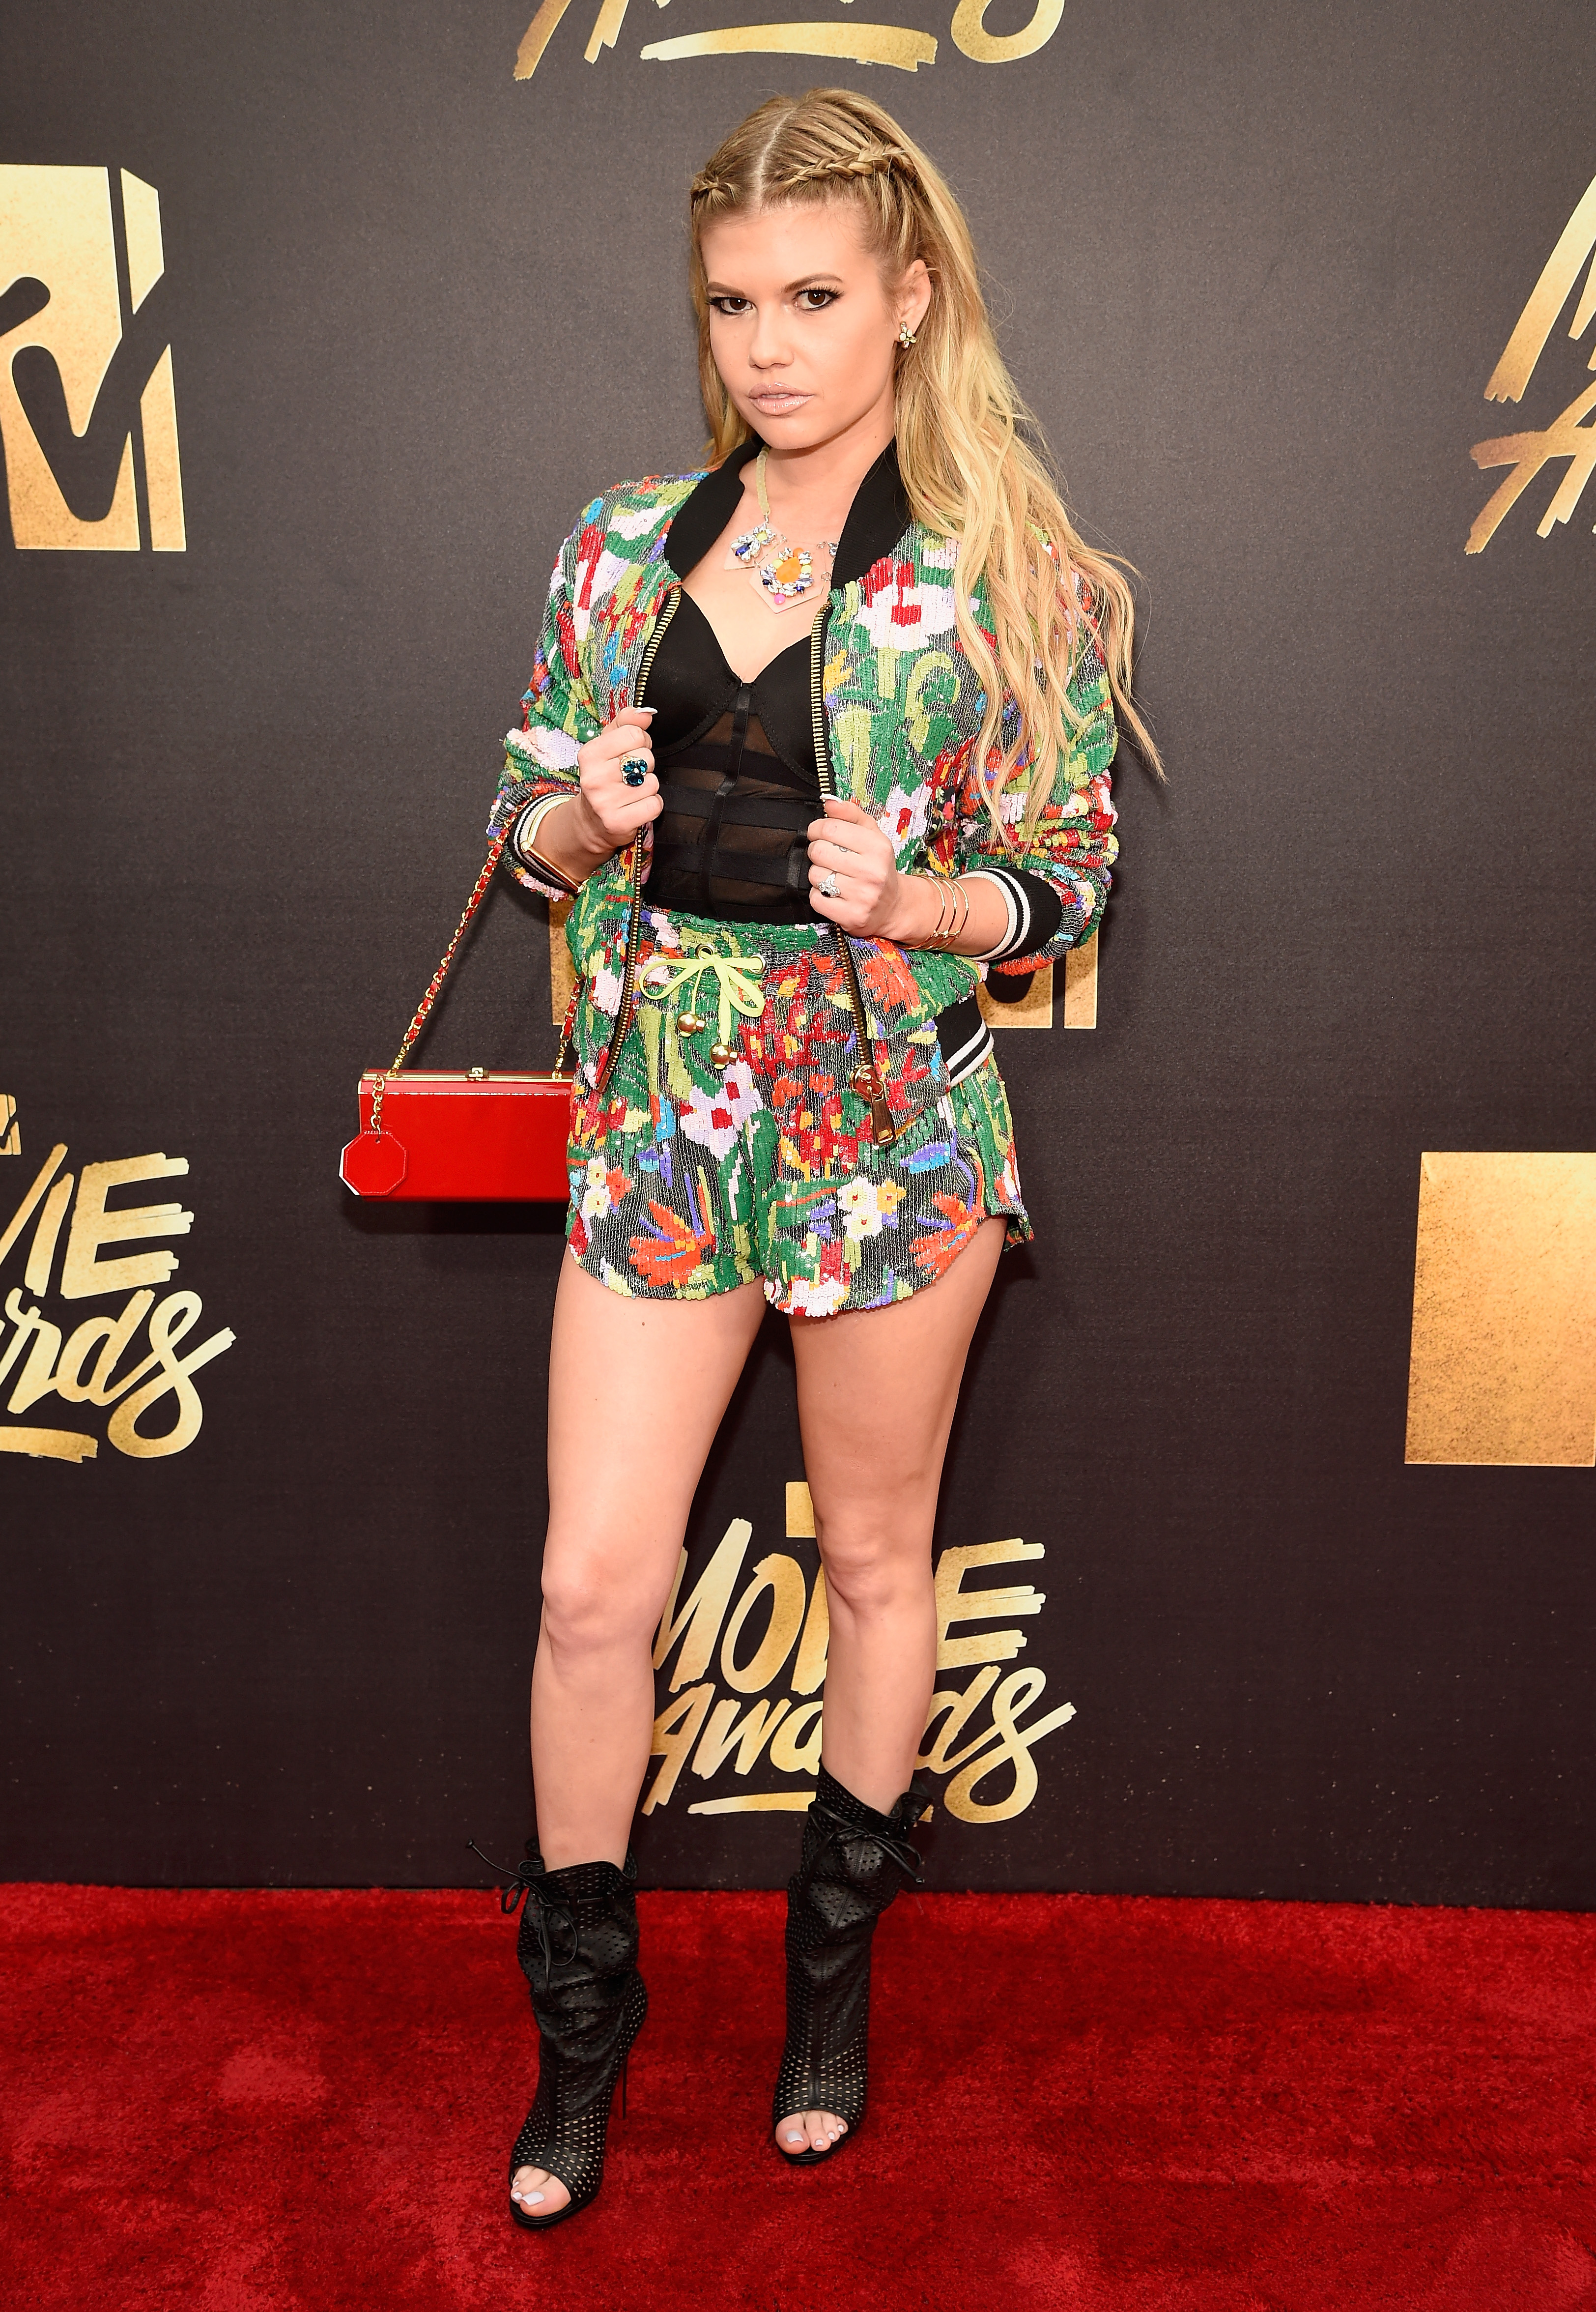 Chanel West Coast attends the 2016 MTV Movie Awards at Warner Bros. Studios on April 9, 2016 in Burbank, Calif.